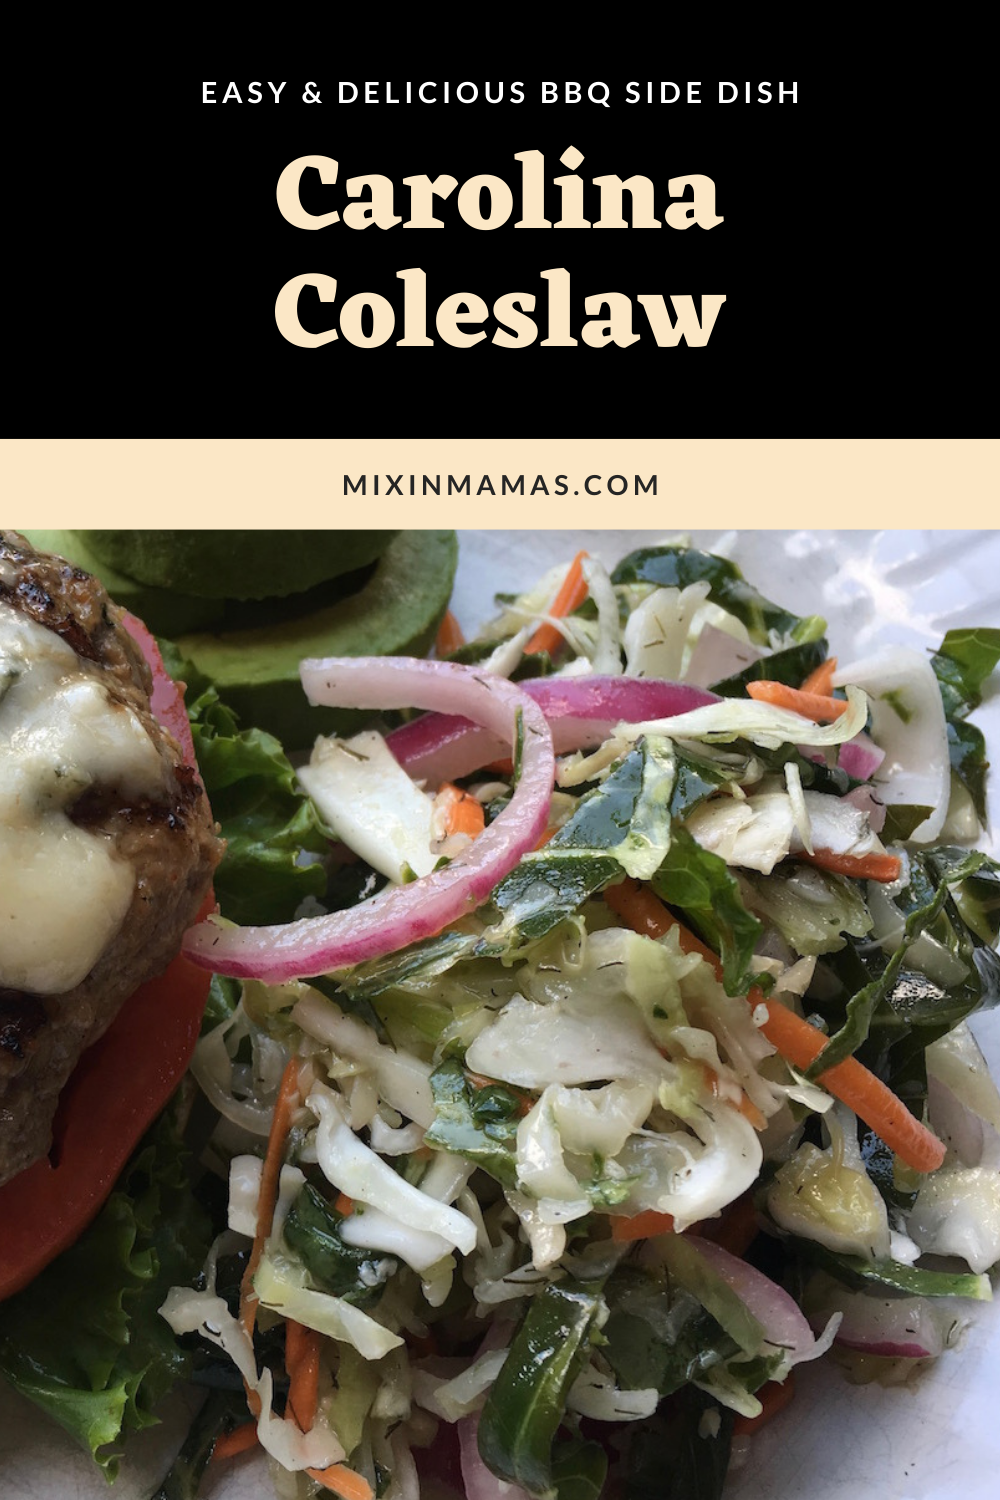 Carolina Coleslaw: An Easy & Delicious BBQ Side Dish